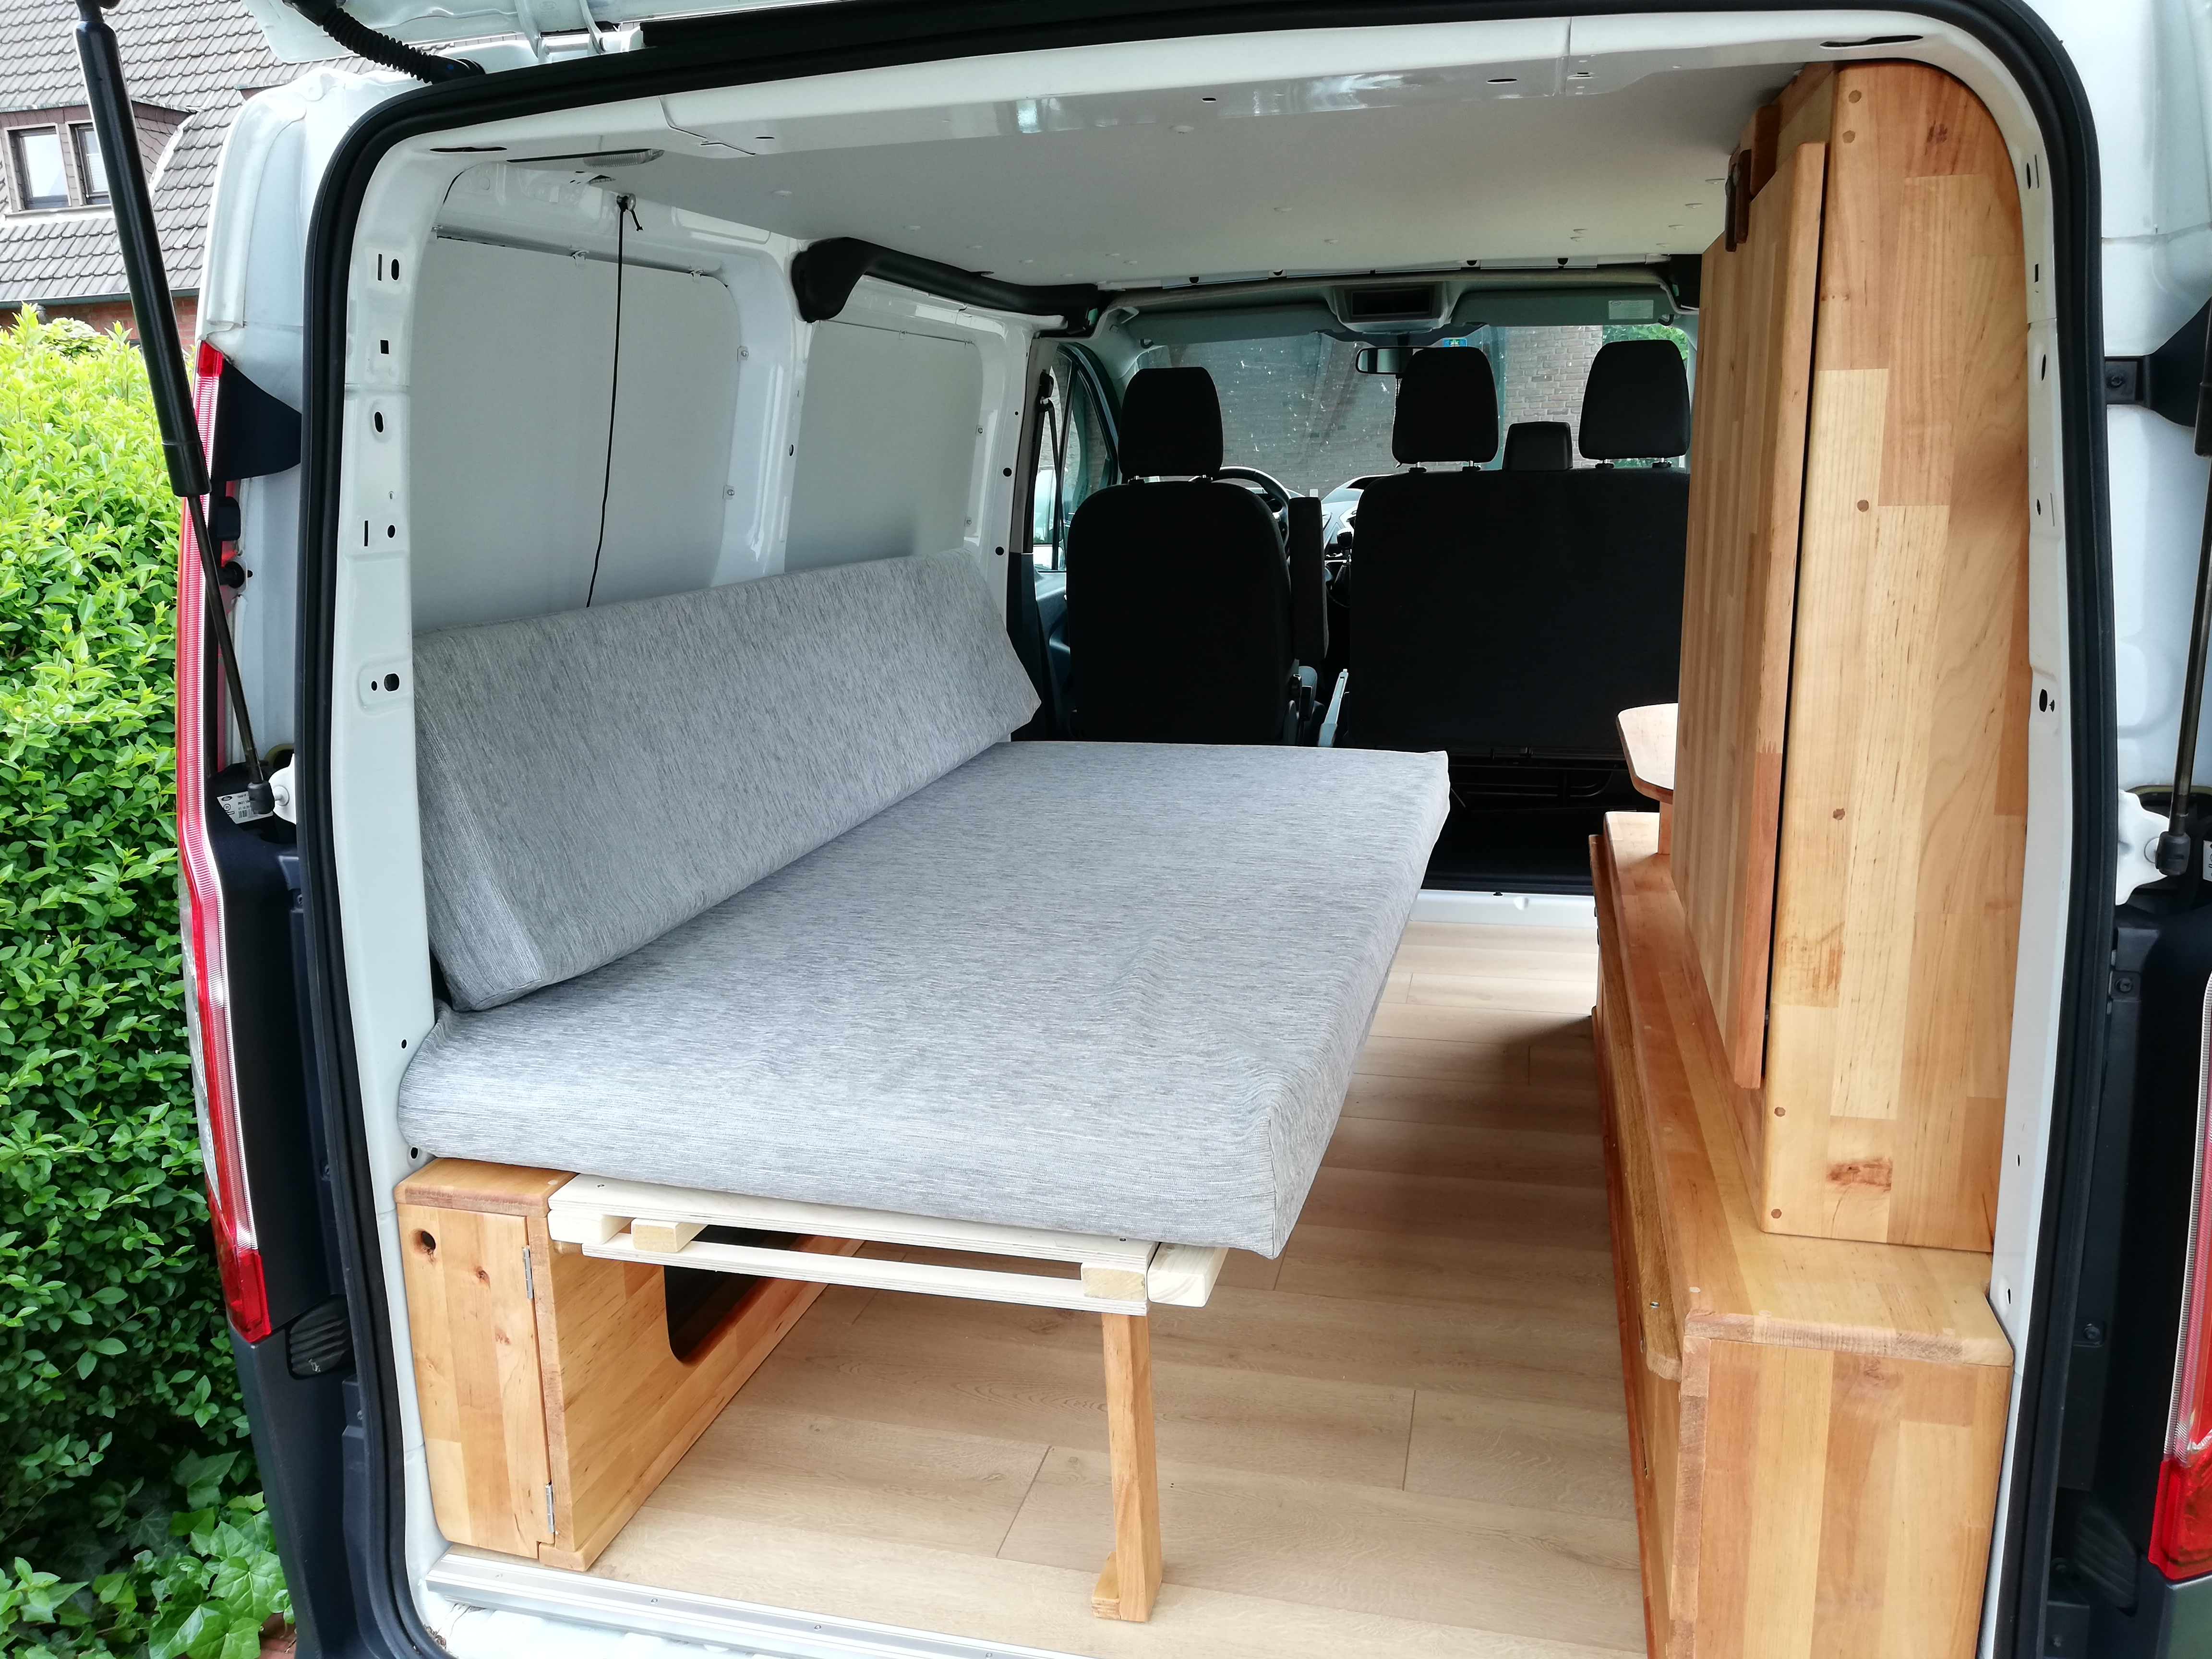 ford transit ktm umbau camping ausbau aus kleintransporter wird camper. Black Bedroom Furniture Sets. Home Design Ideas